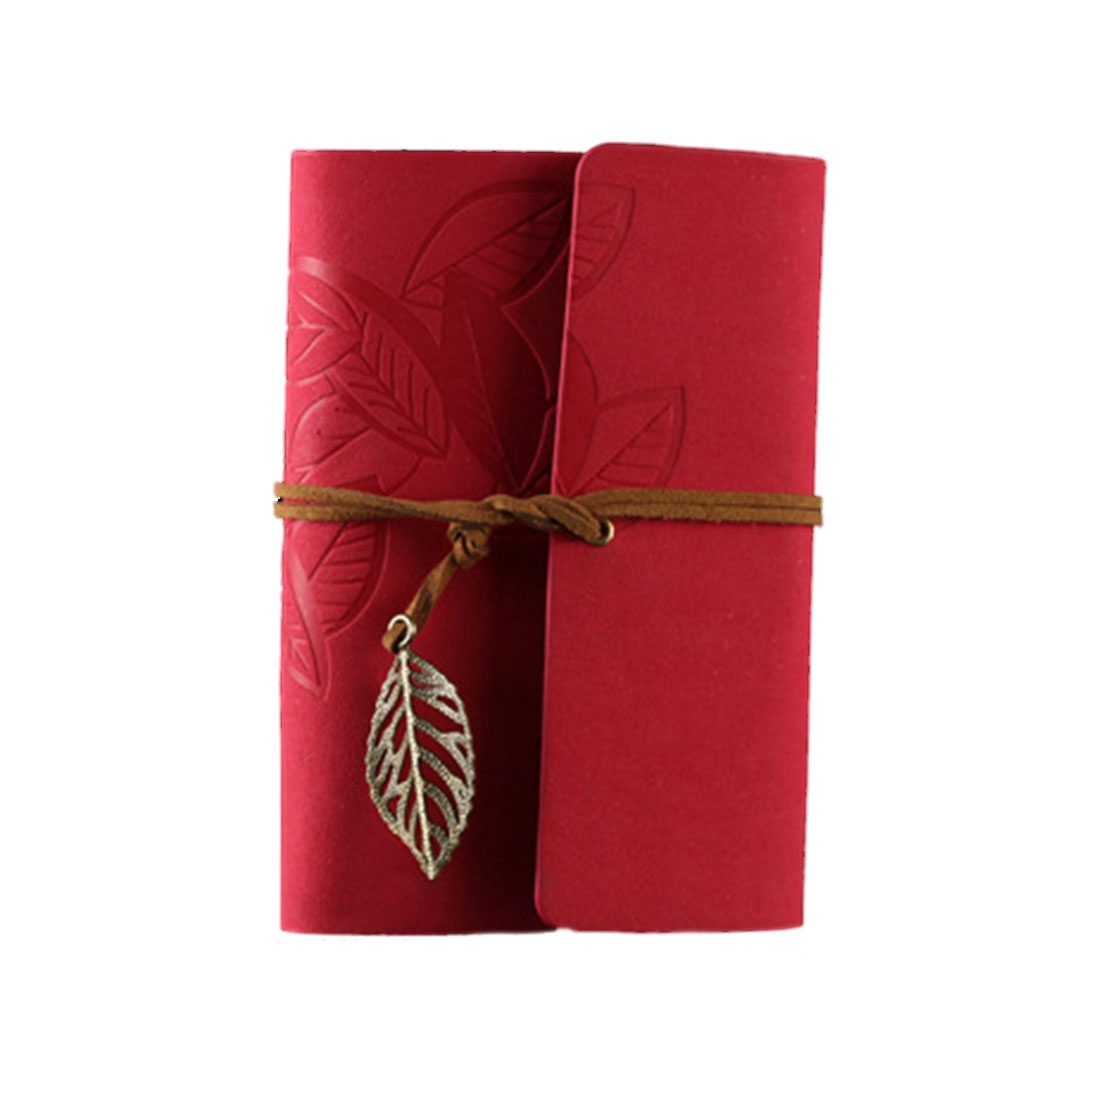 Vintage Leaf PU Leather Cover Loose Leaf Blank Notebook Journal Diary Gift (Rose red) high quality pu cover a5 notebook journal buckle loose leaf planner diary business buckle notebook business office school gift